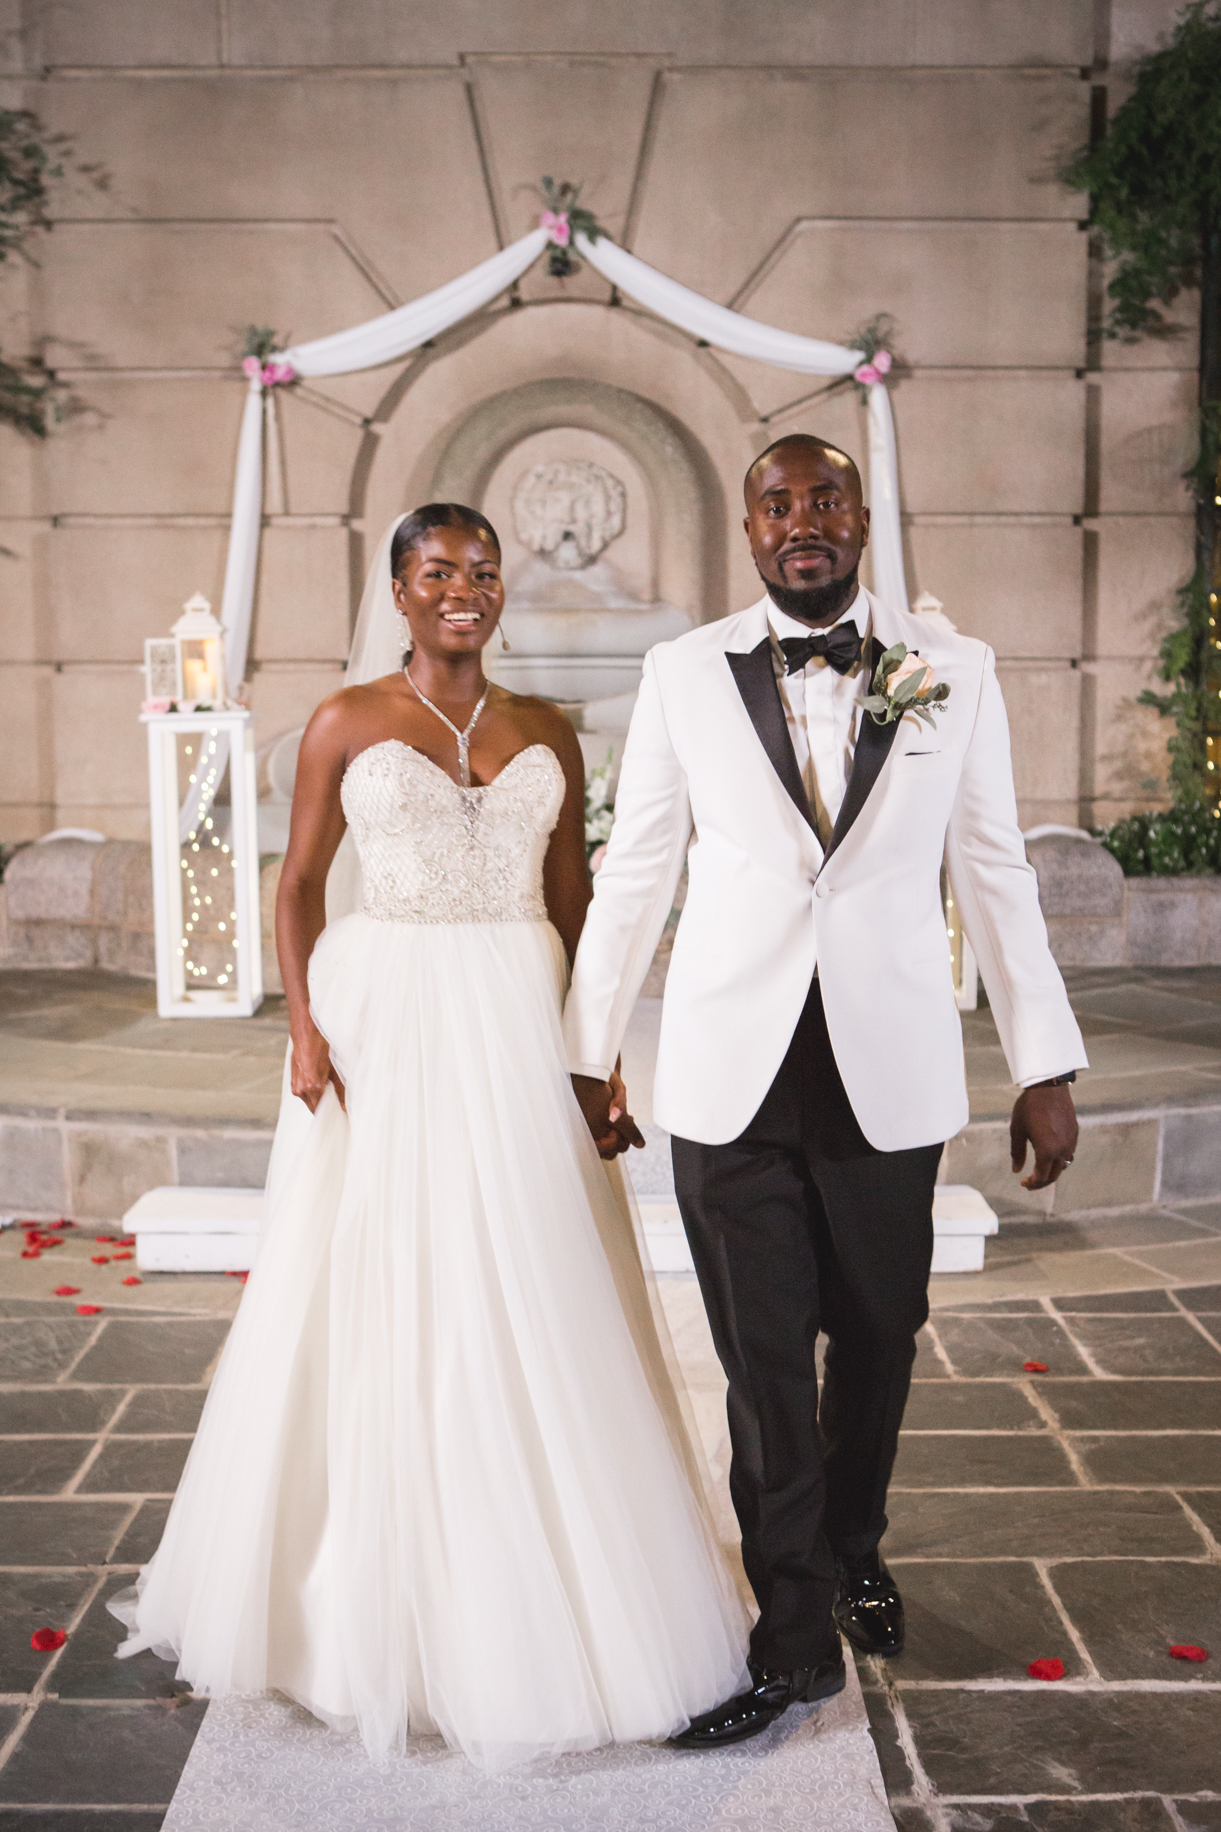 Married at First Sight Meka and Michael